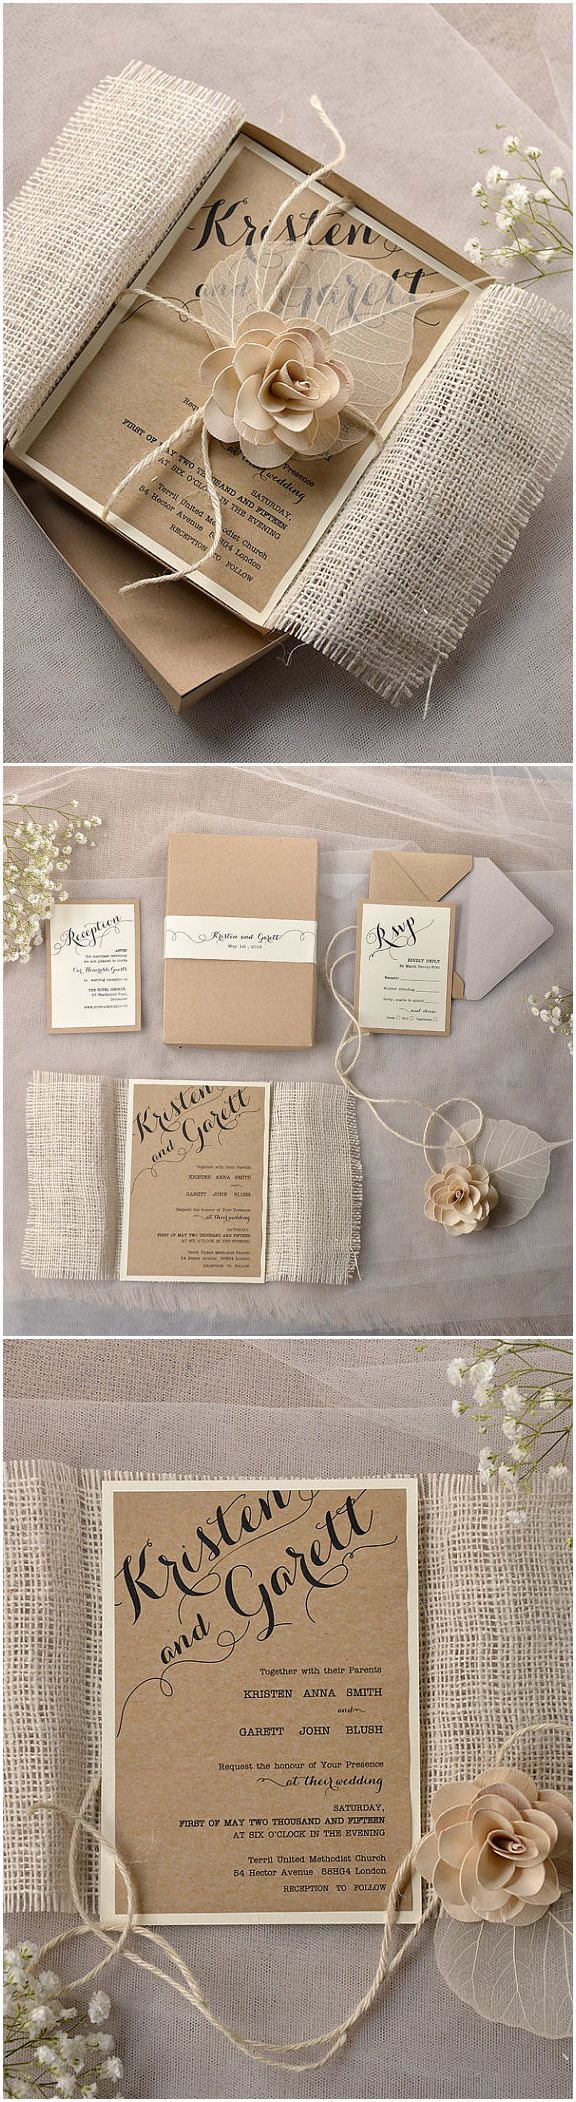 lace and burlap rustic box wedding invitations